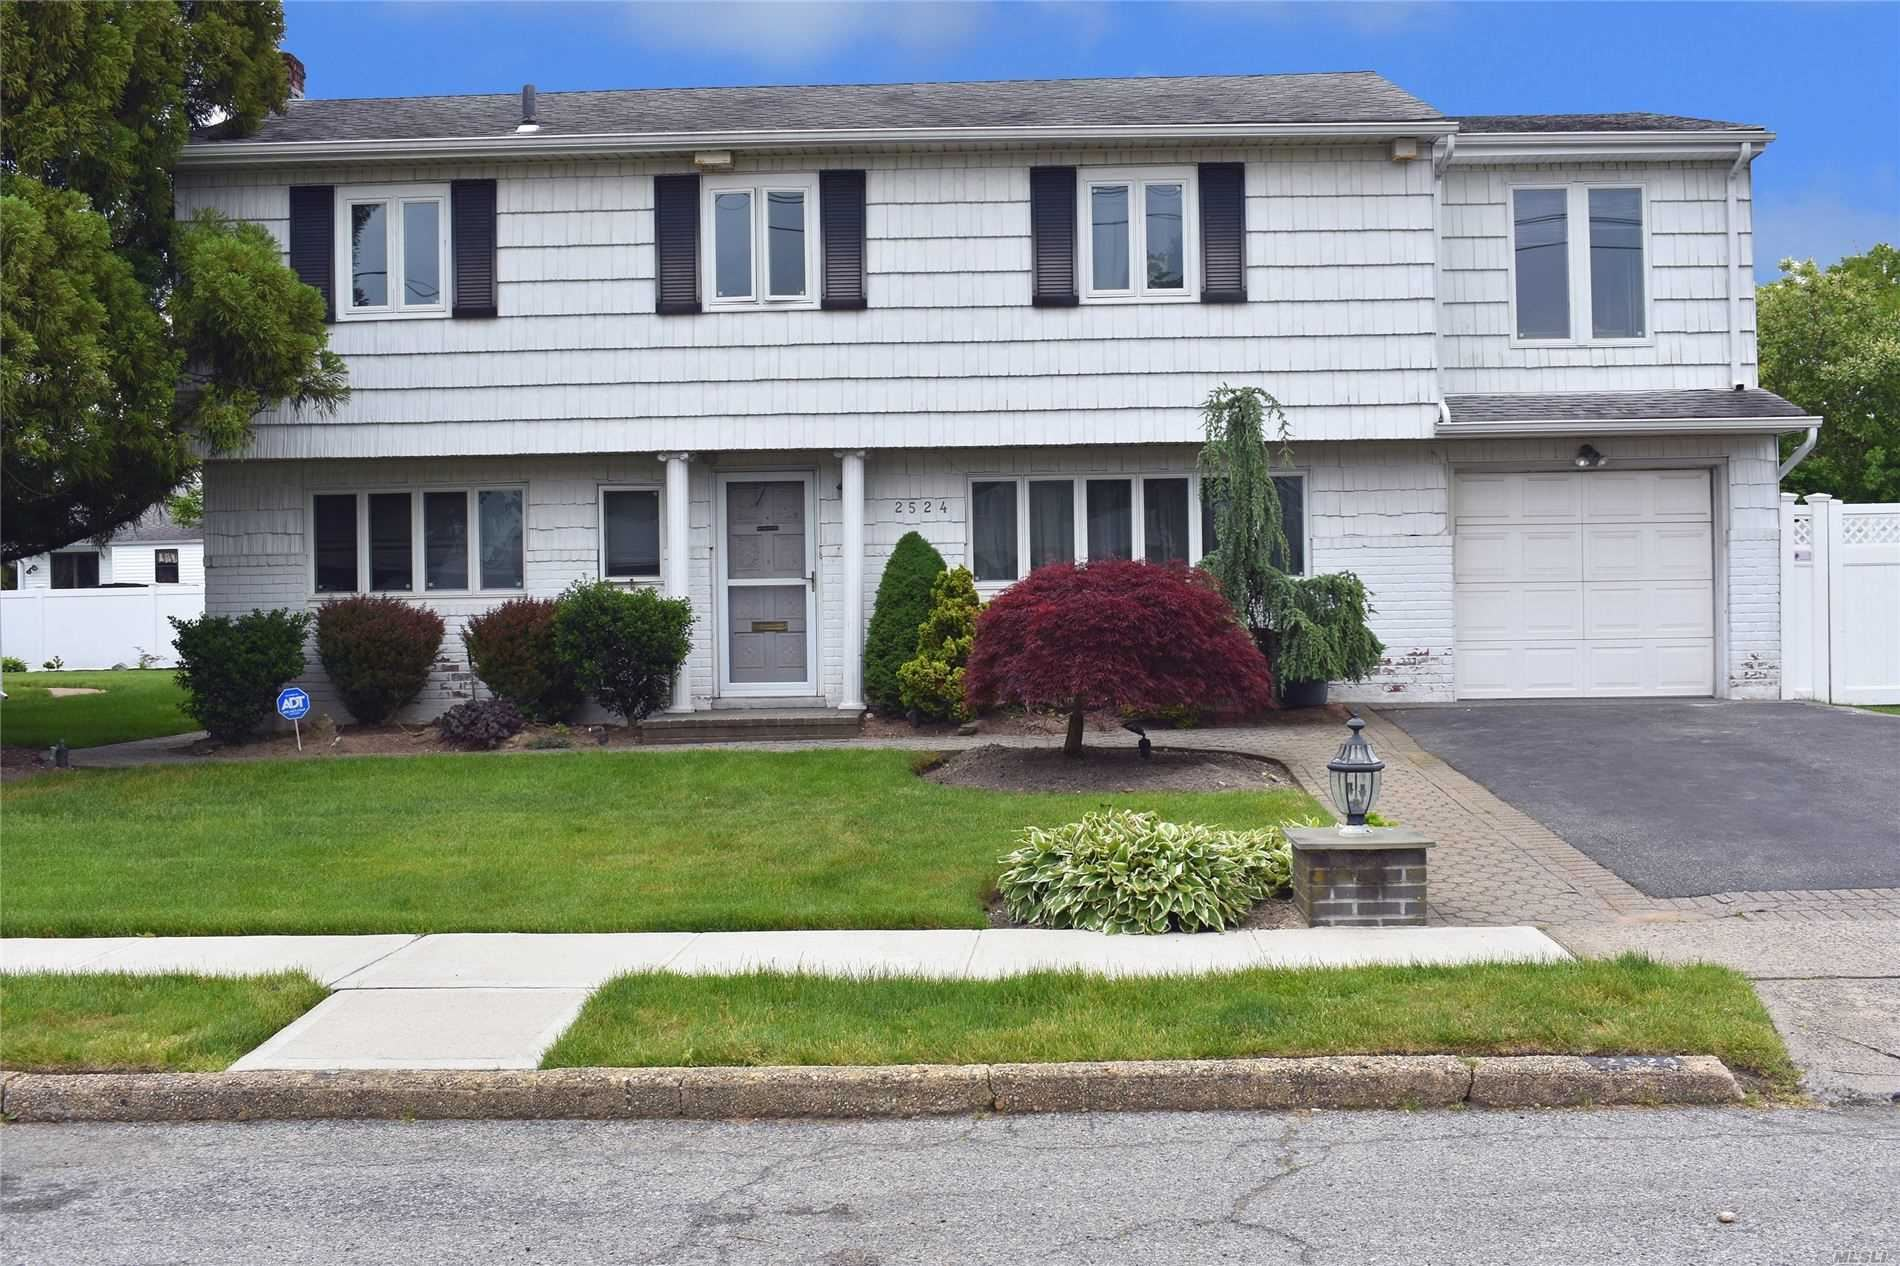 2524 Horace Ct, Bellmore, NY 11710 - MLS#: 3217982